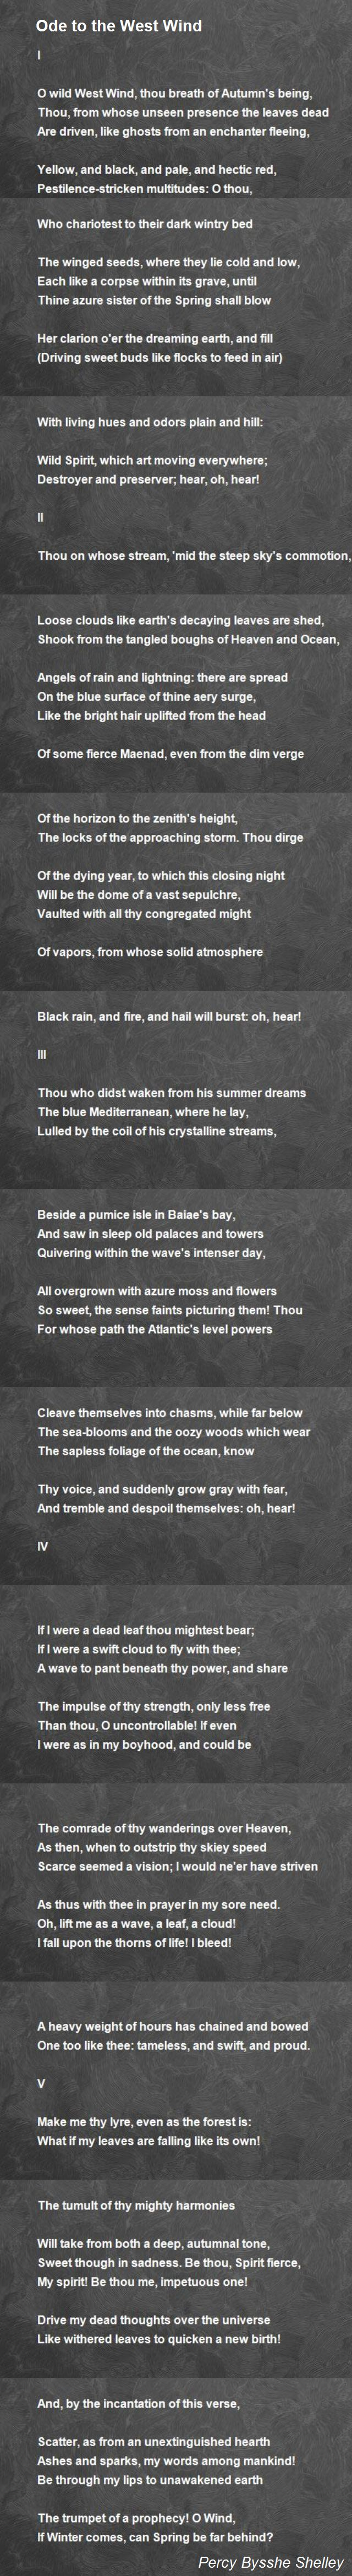 Ode To The West Wind Poem By Percy Bysshe Shelley Hunter Autumn Poetry Poetic Device Used In